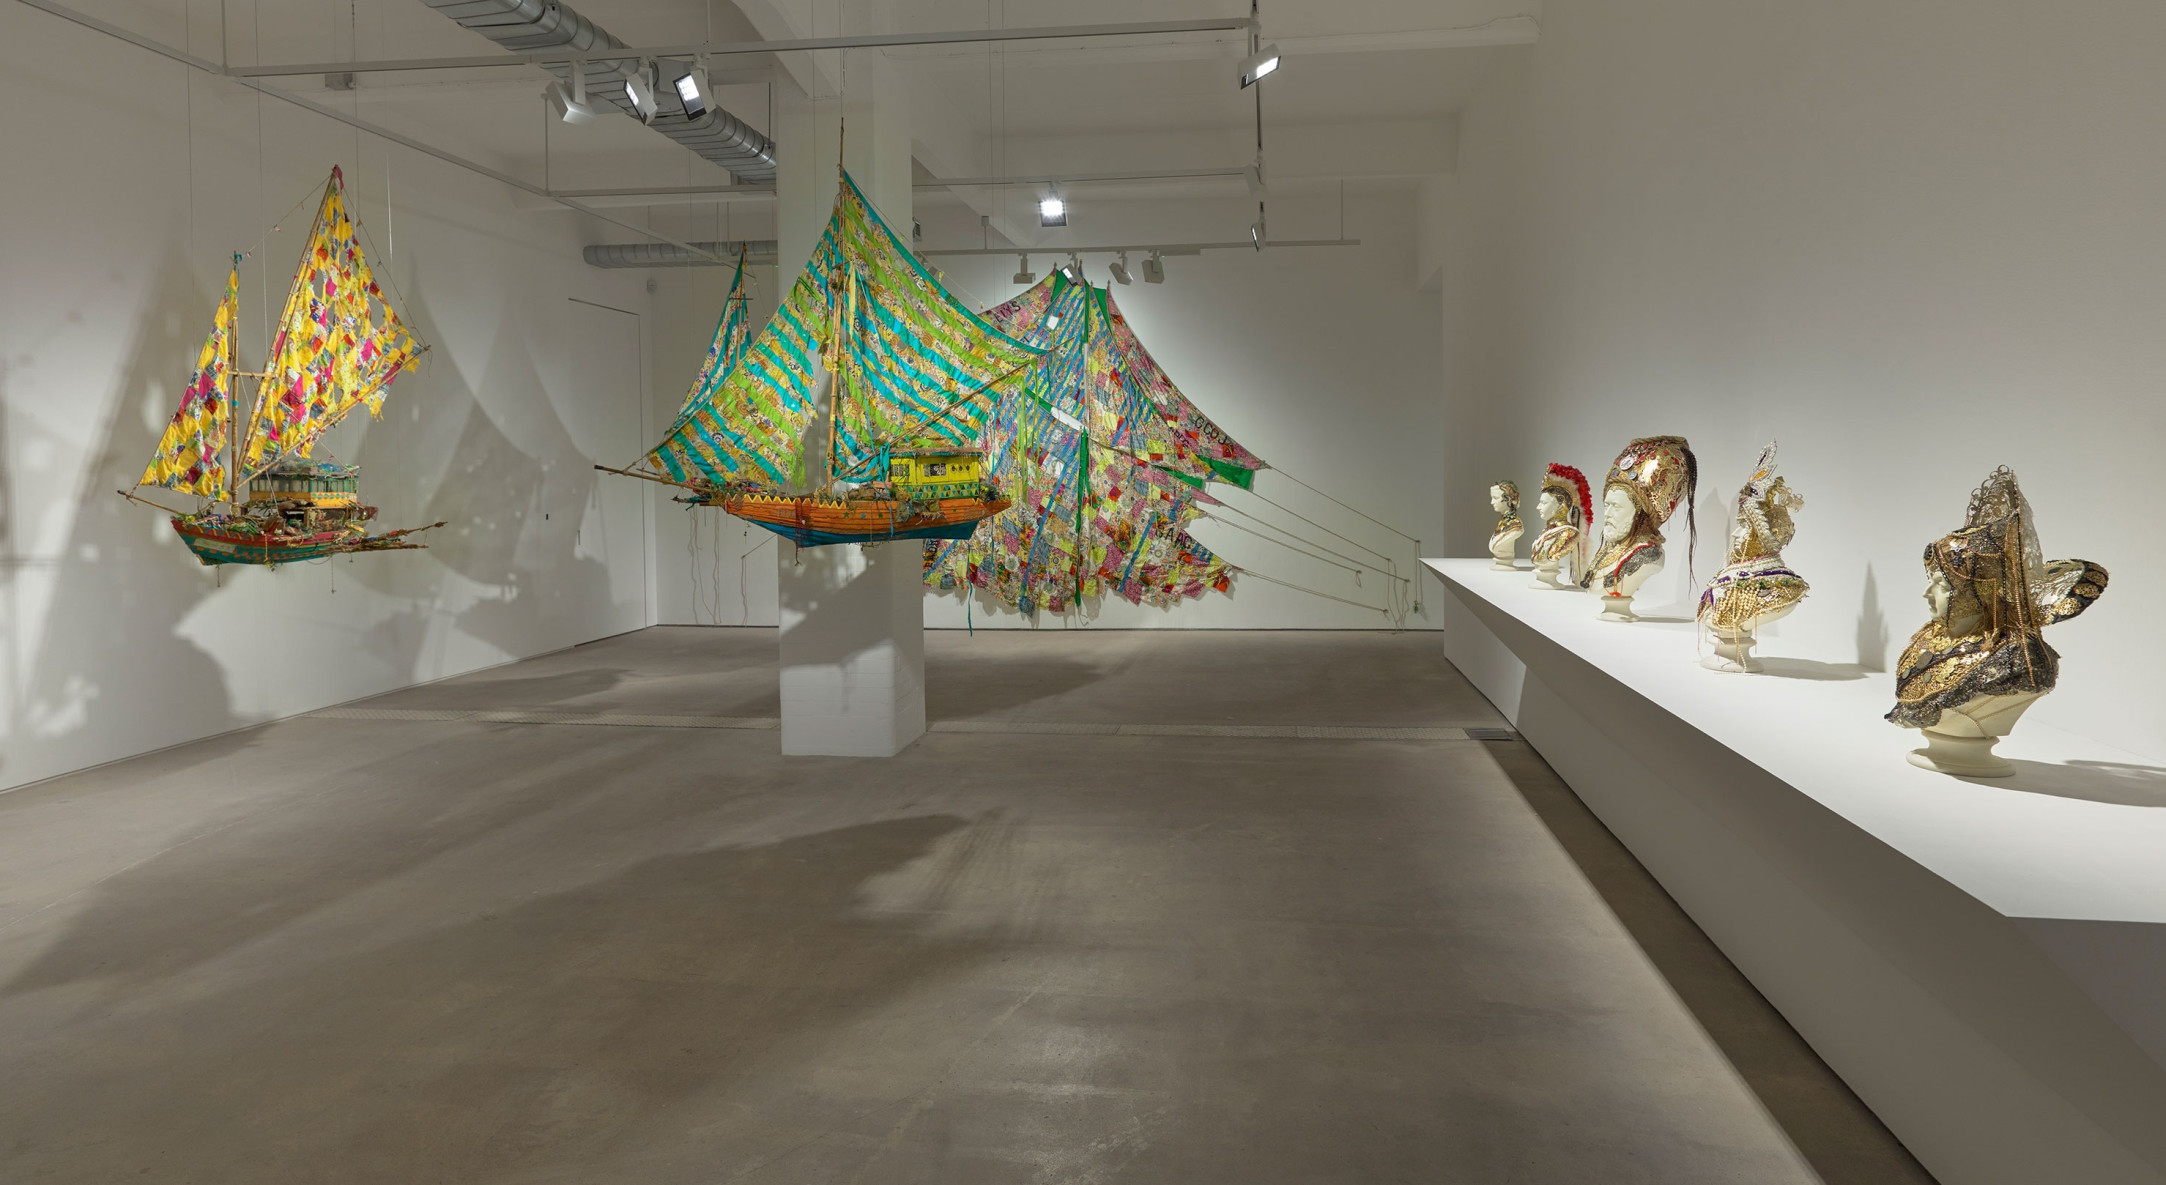 Installation view of Hew Locke, Where Lies the Land at Hales London